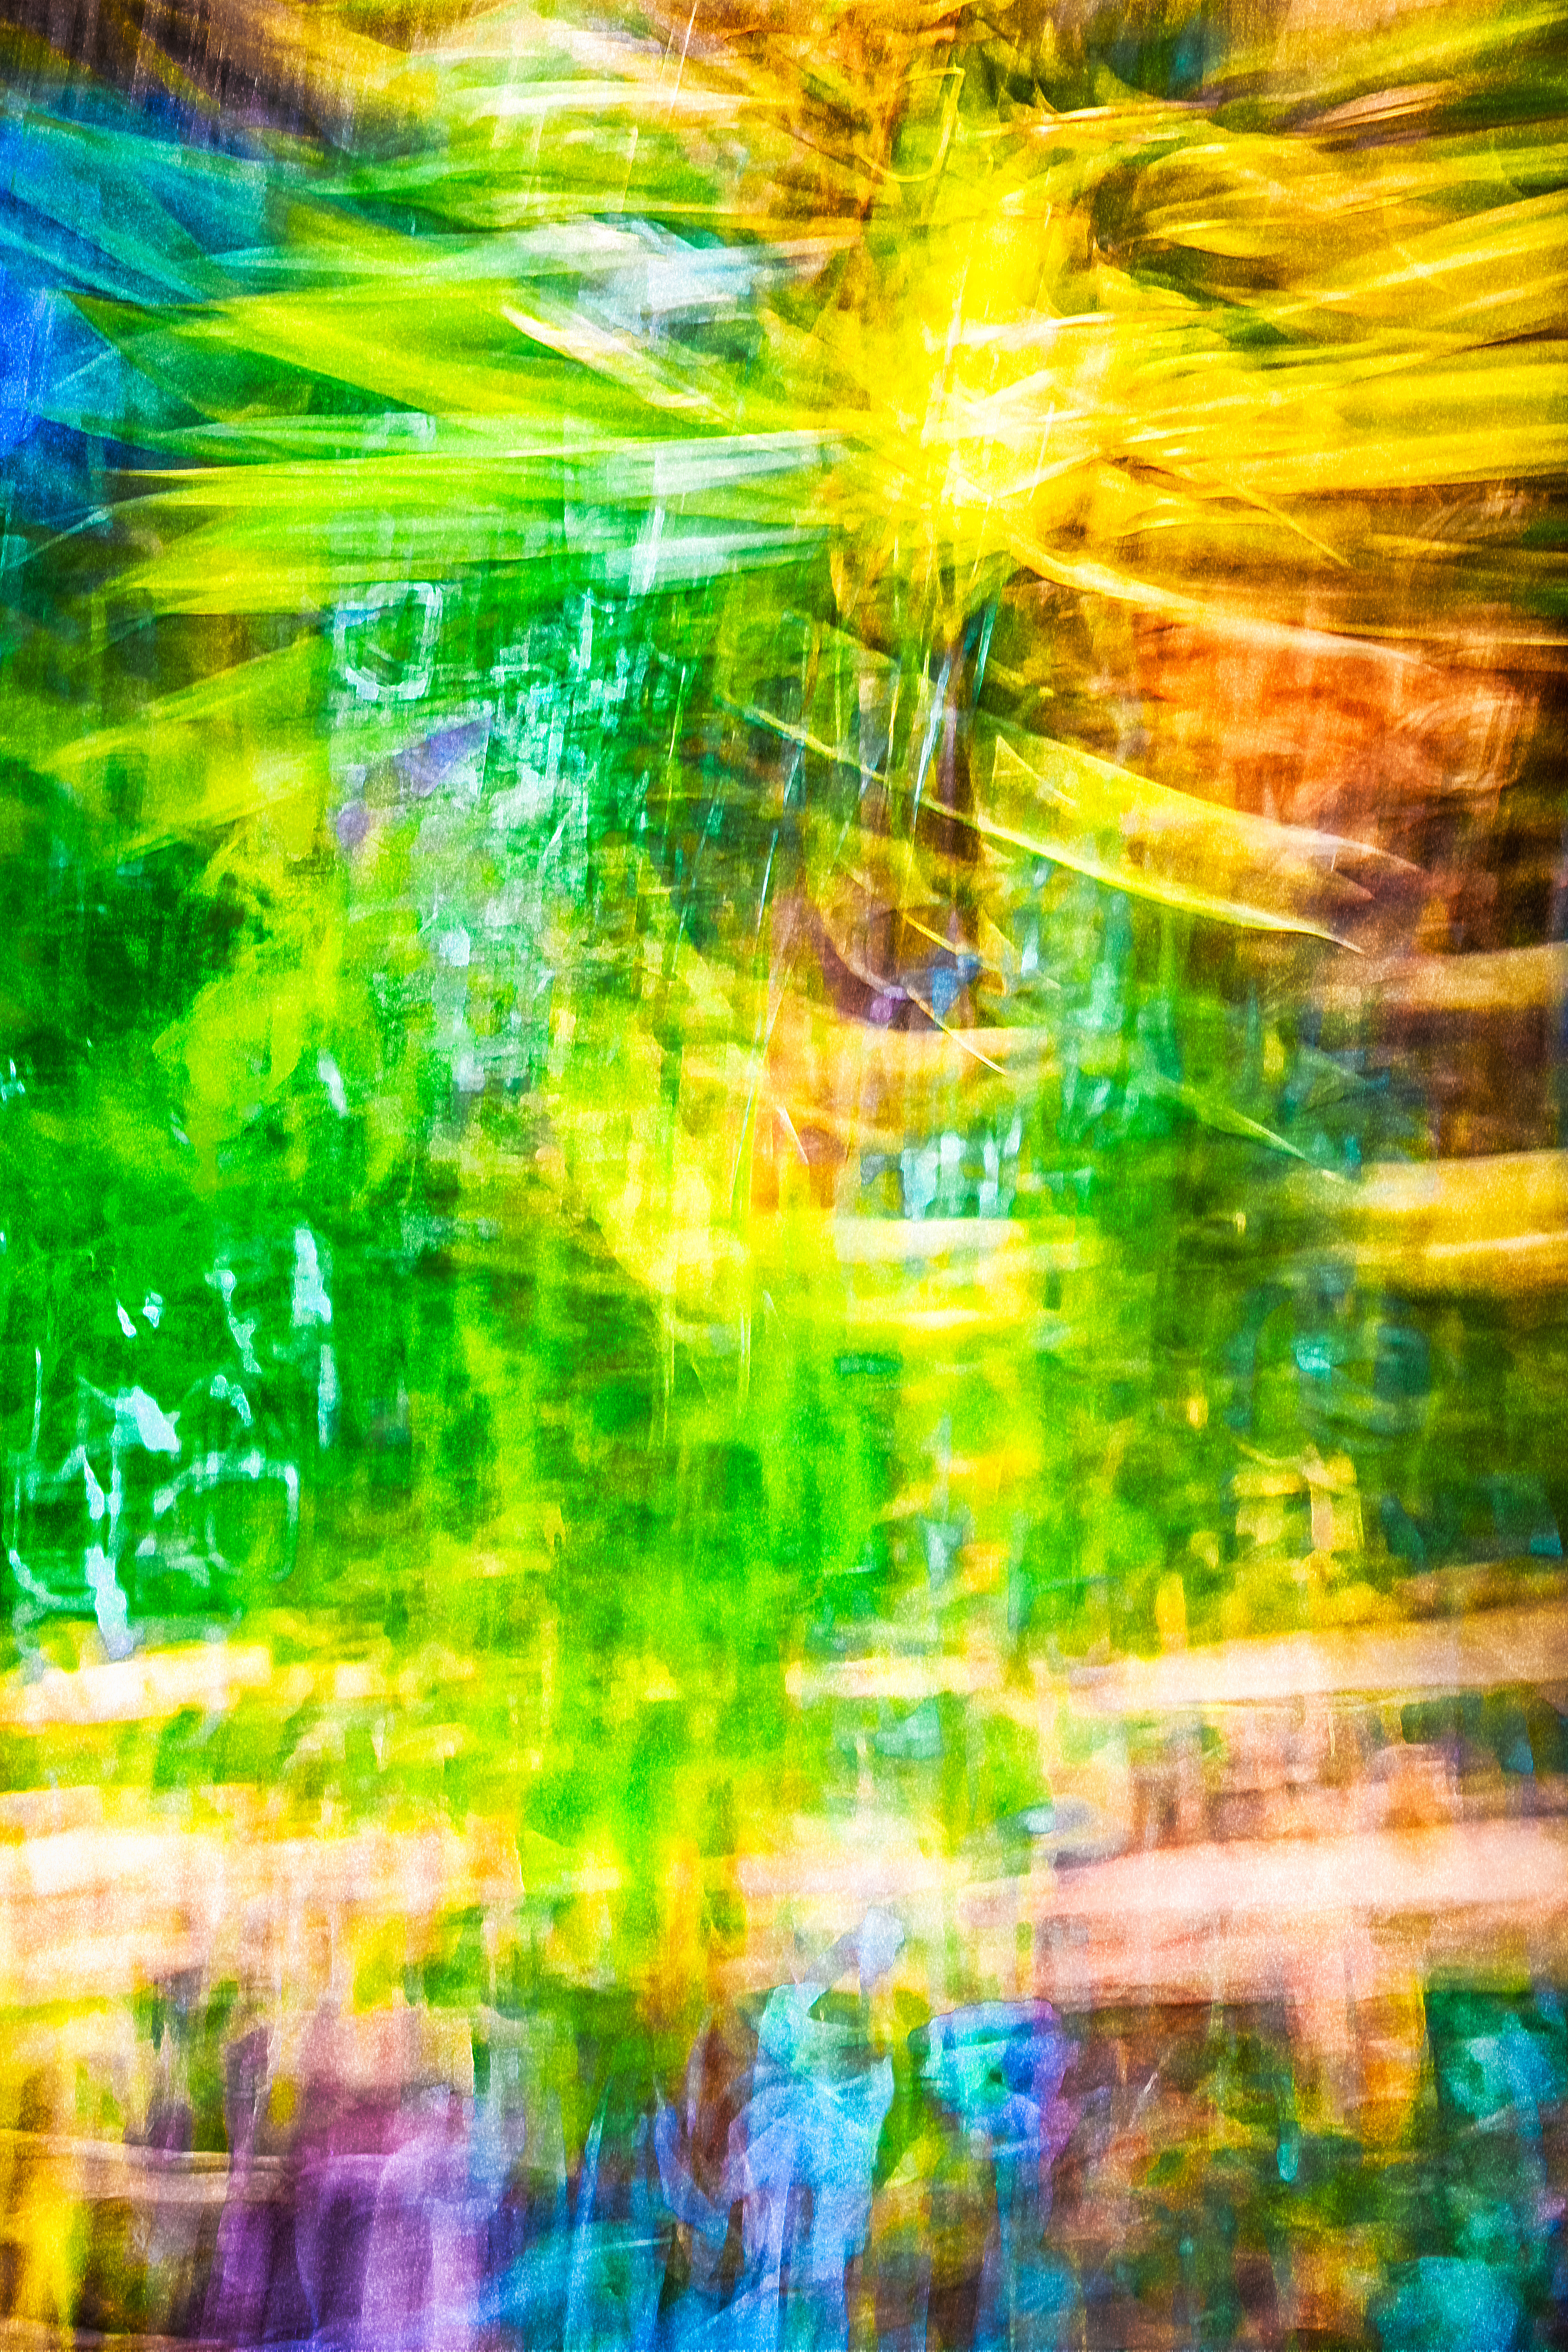 In this photograph, camera movement fuses all the colors and textures of the real world and creates an abstract composition.